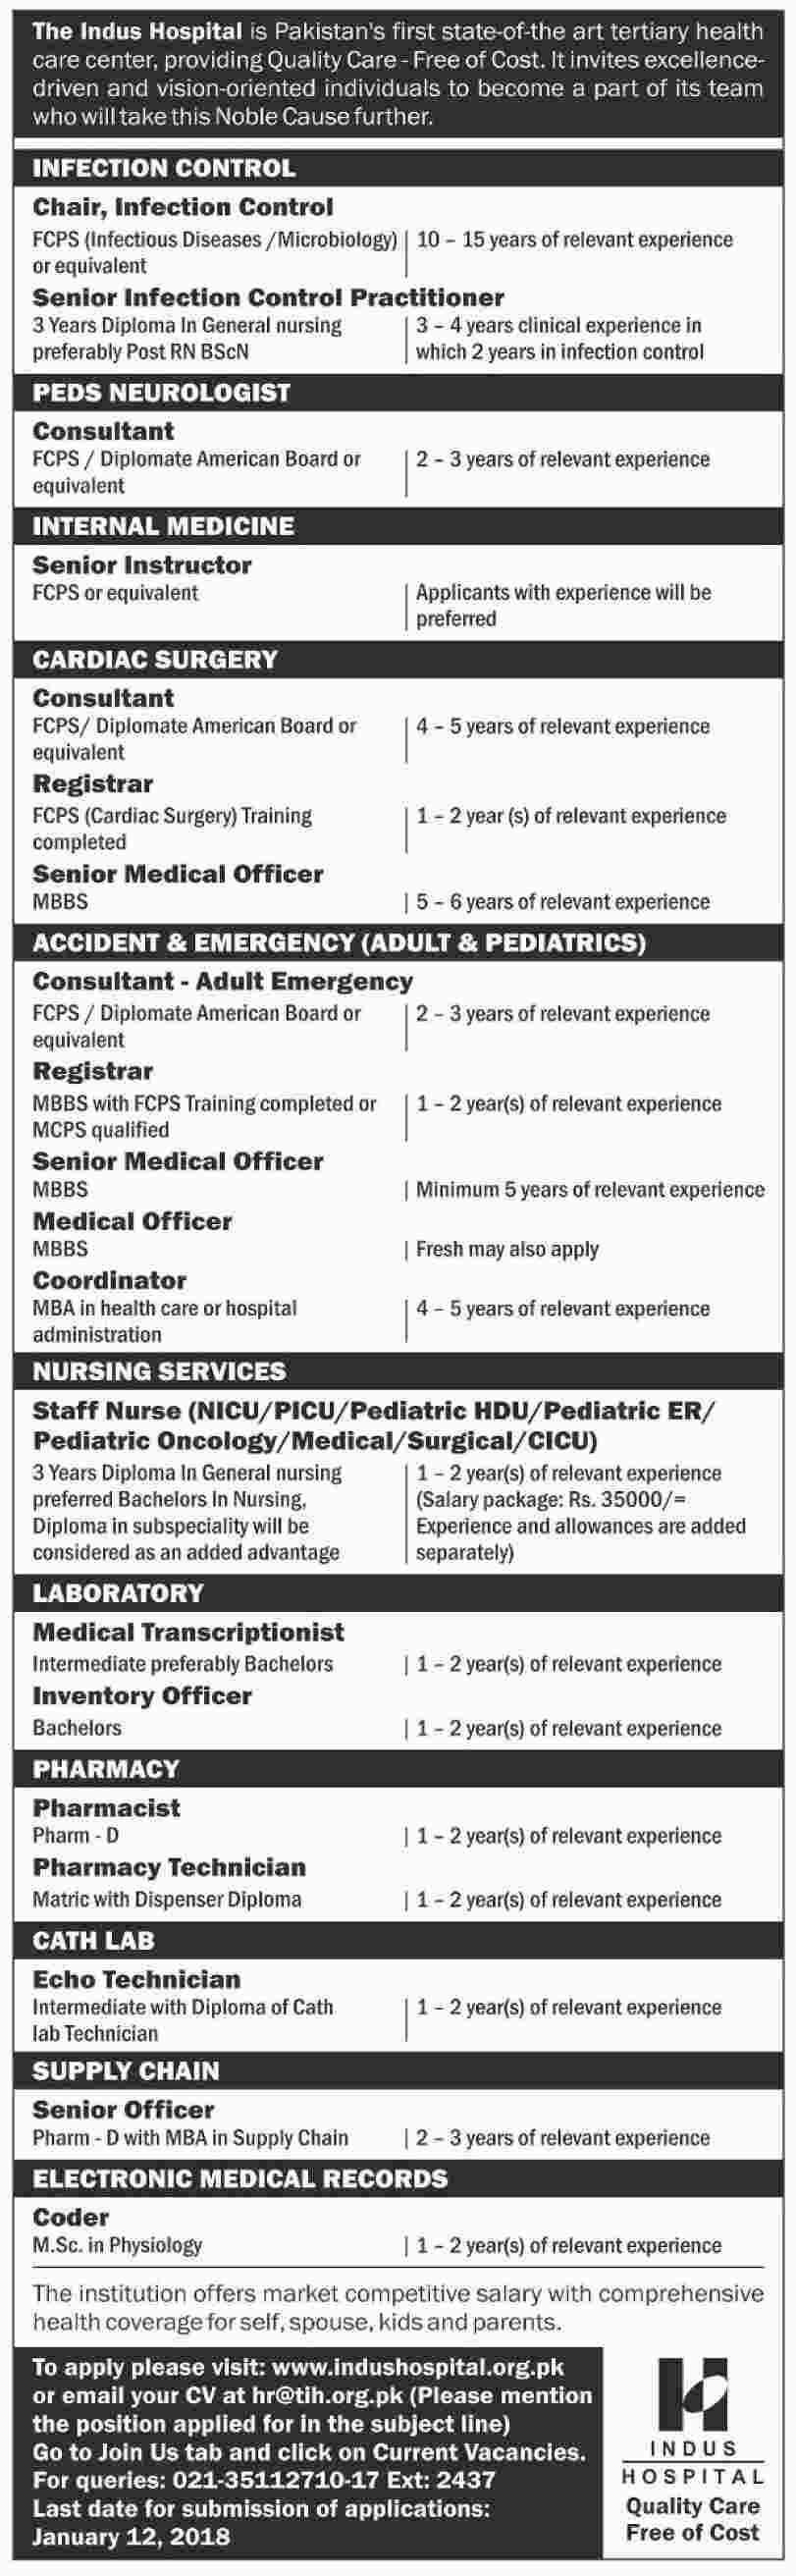 The Indus Hospital Jobs  In Karachi For Medical Officers And